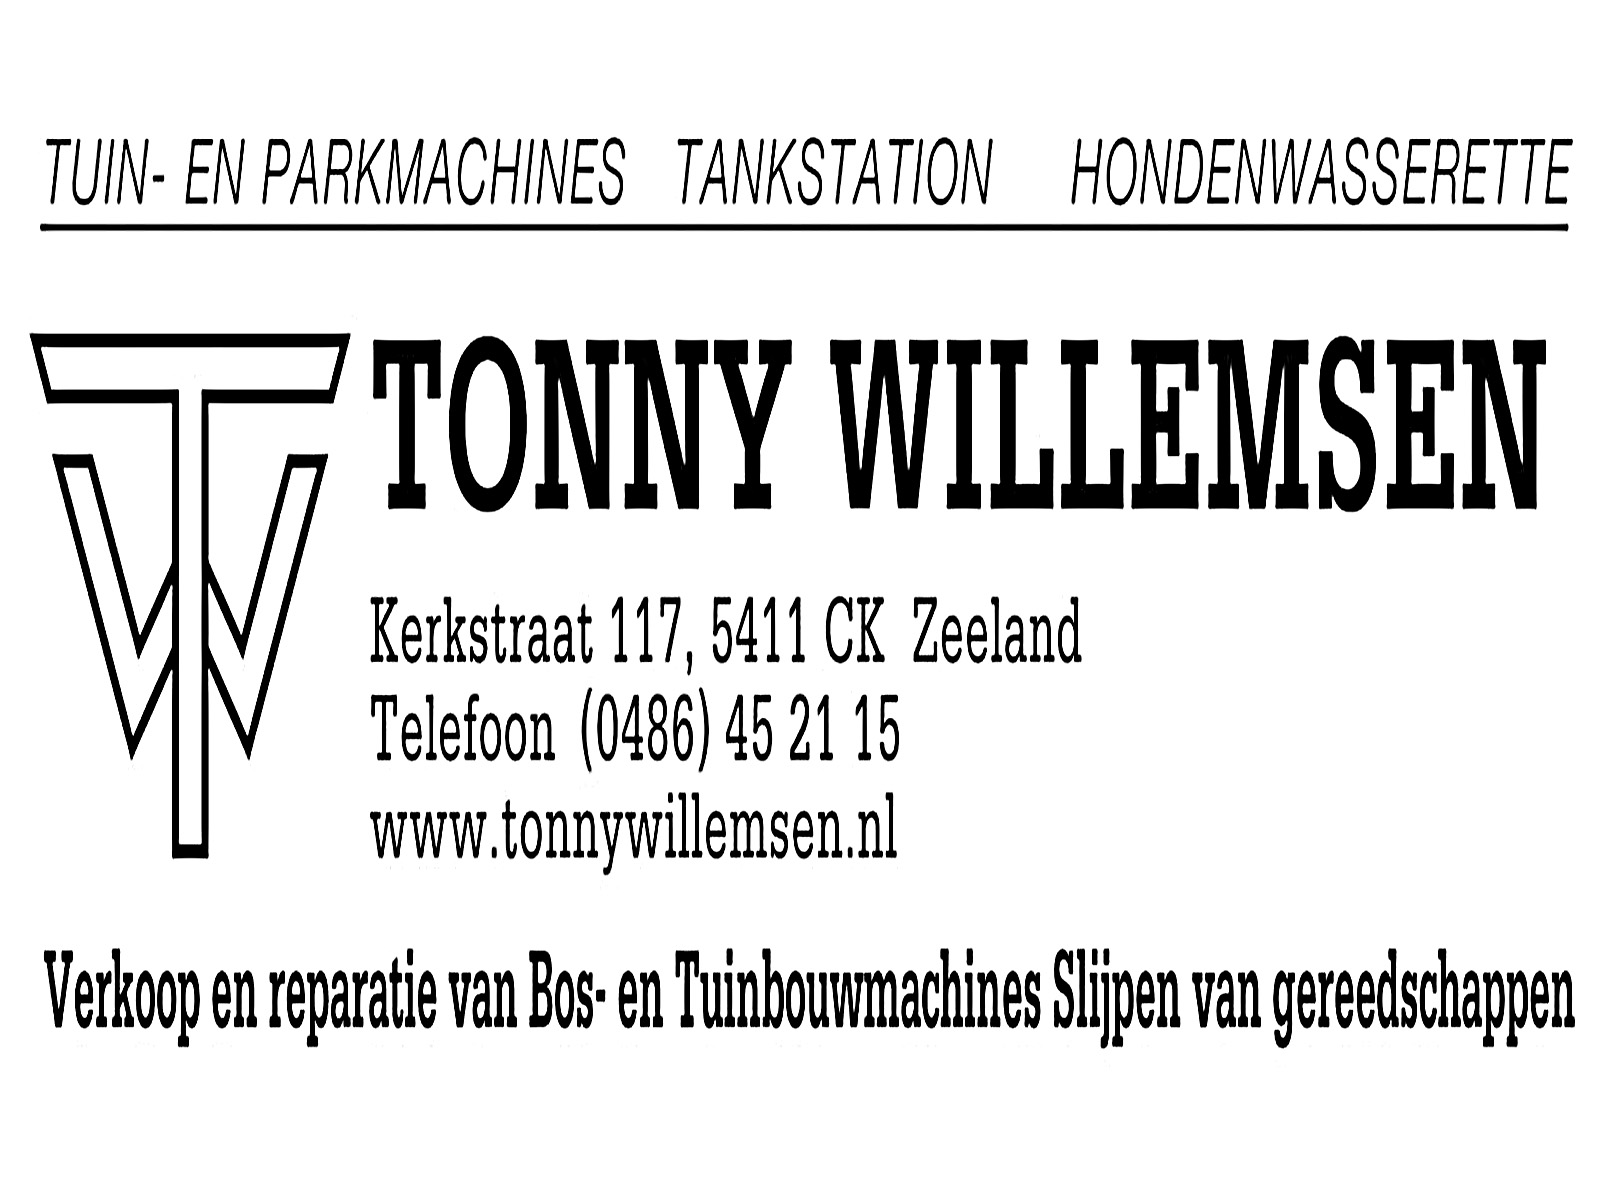 Tonny Willemsen